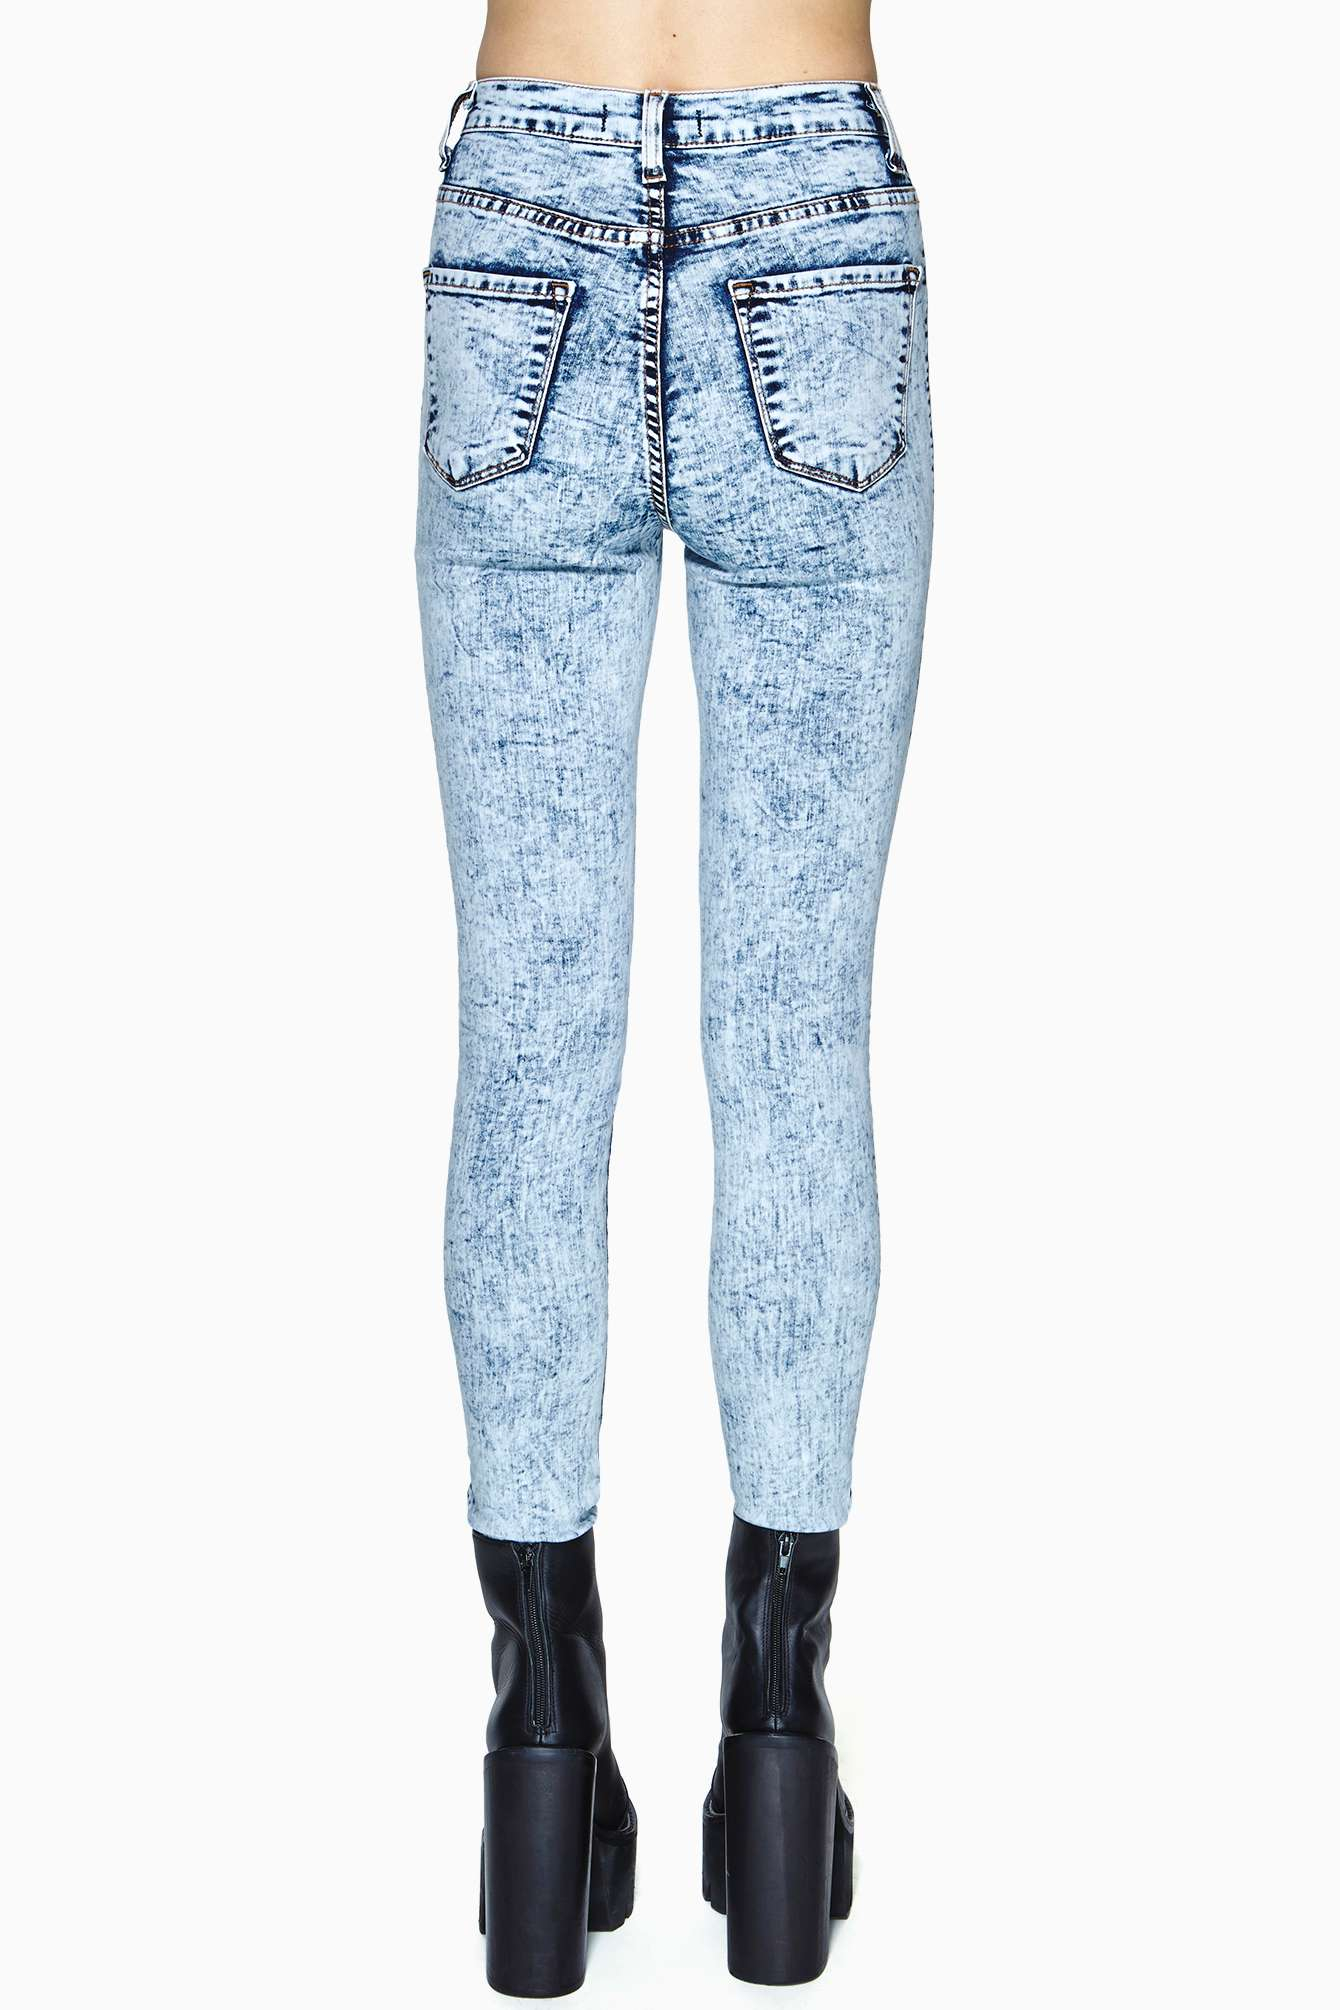 Nasty gal White Out Skinny Jeans in Blue   Lyst